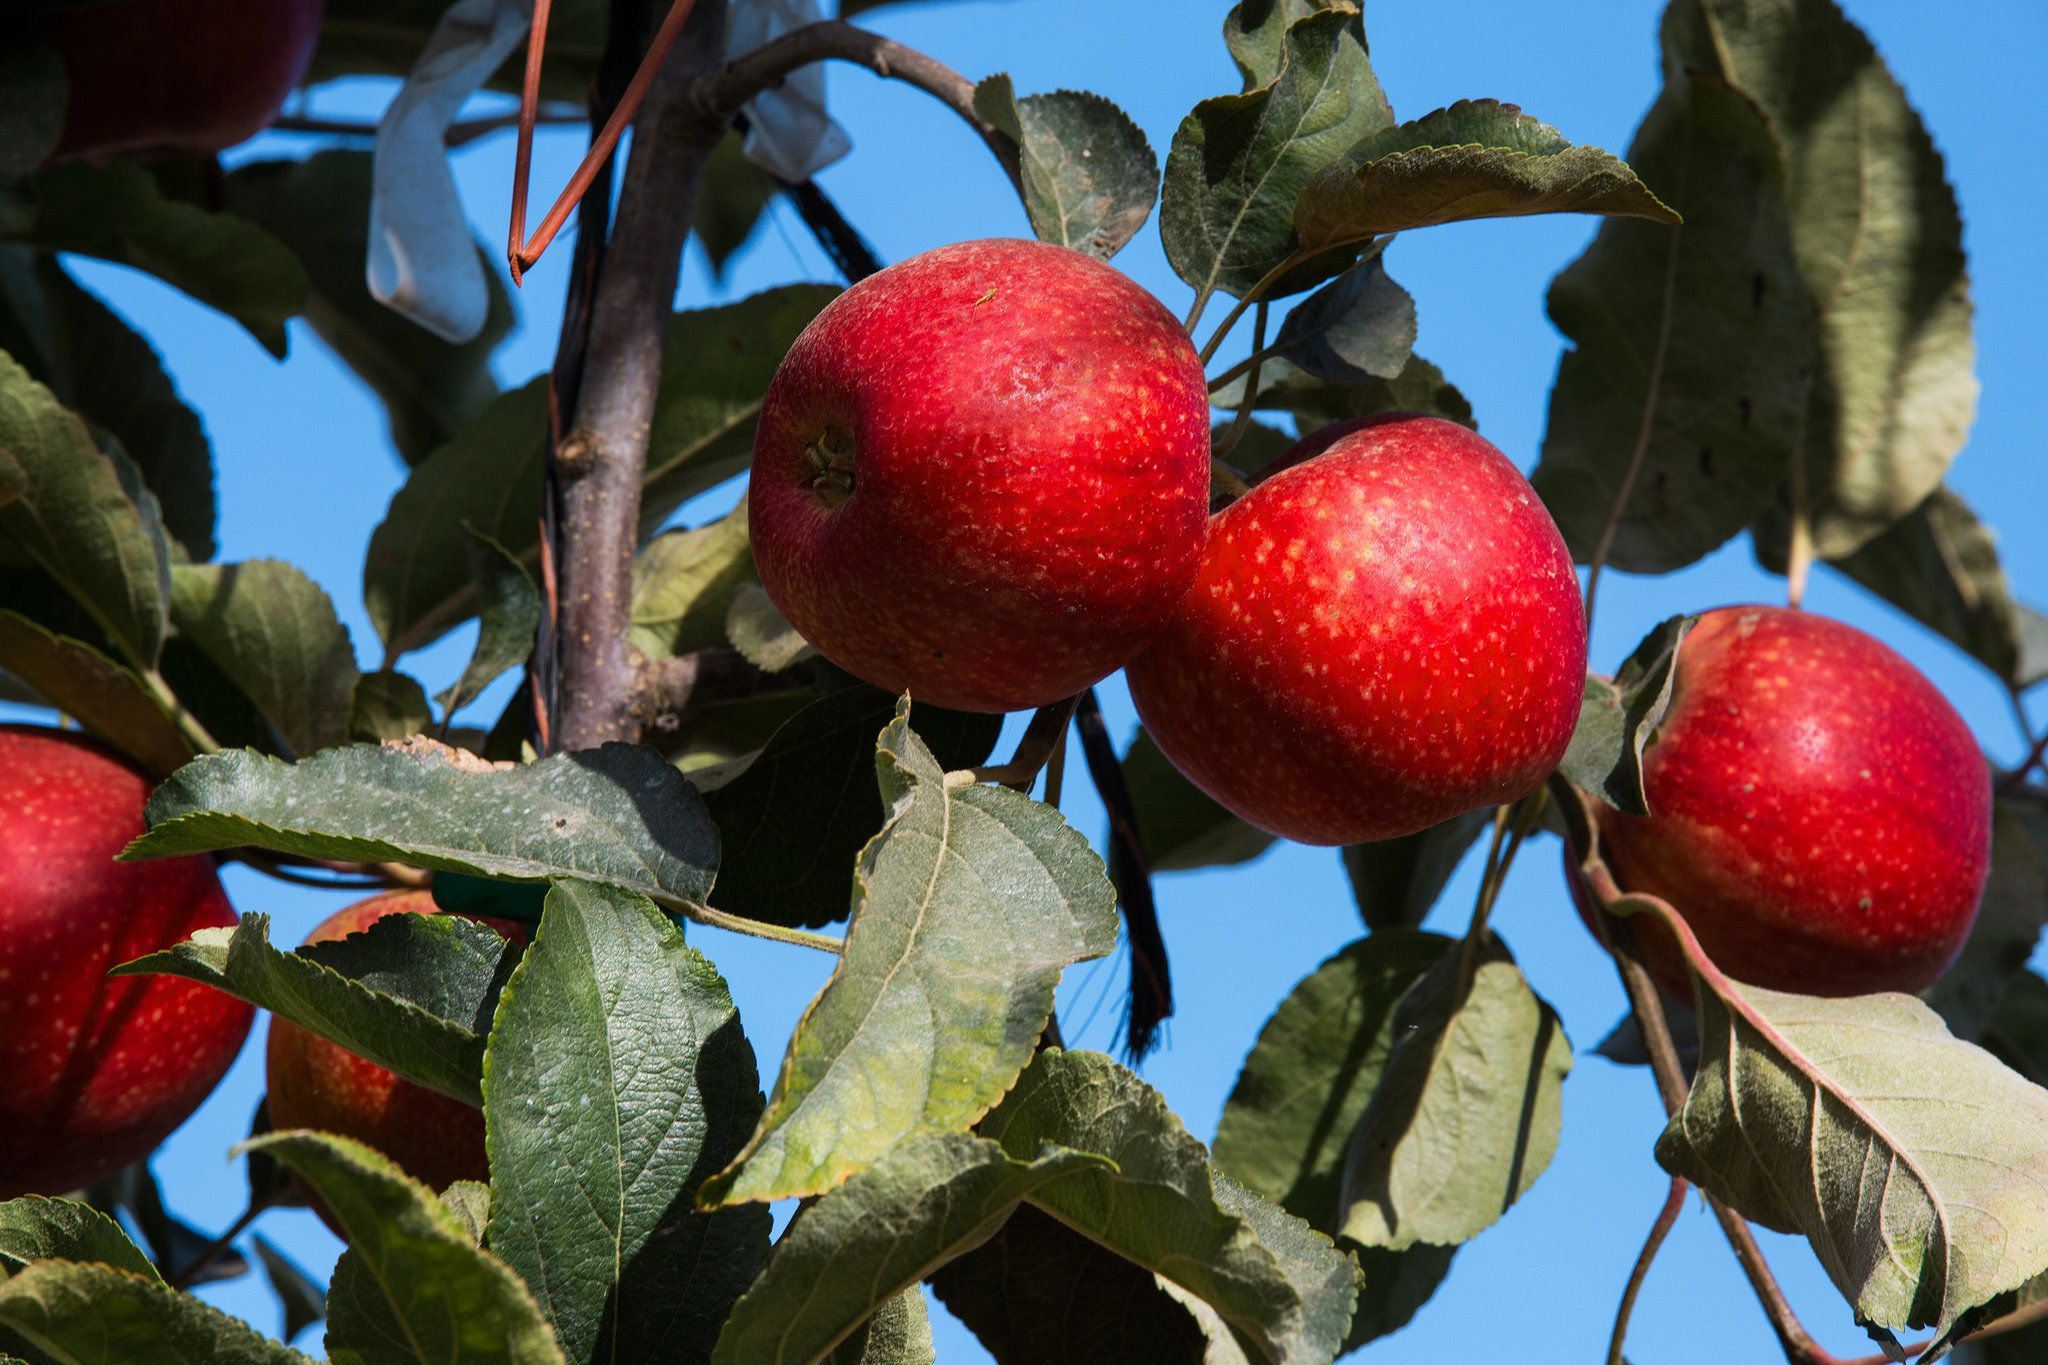 Many breeders have been trying for years to develop apples